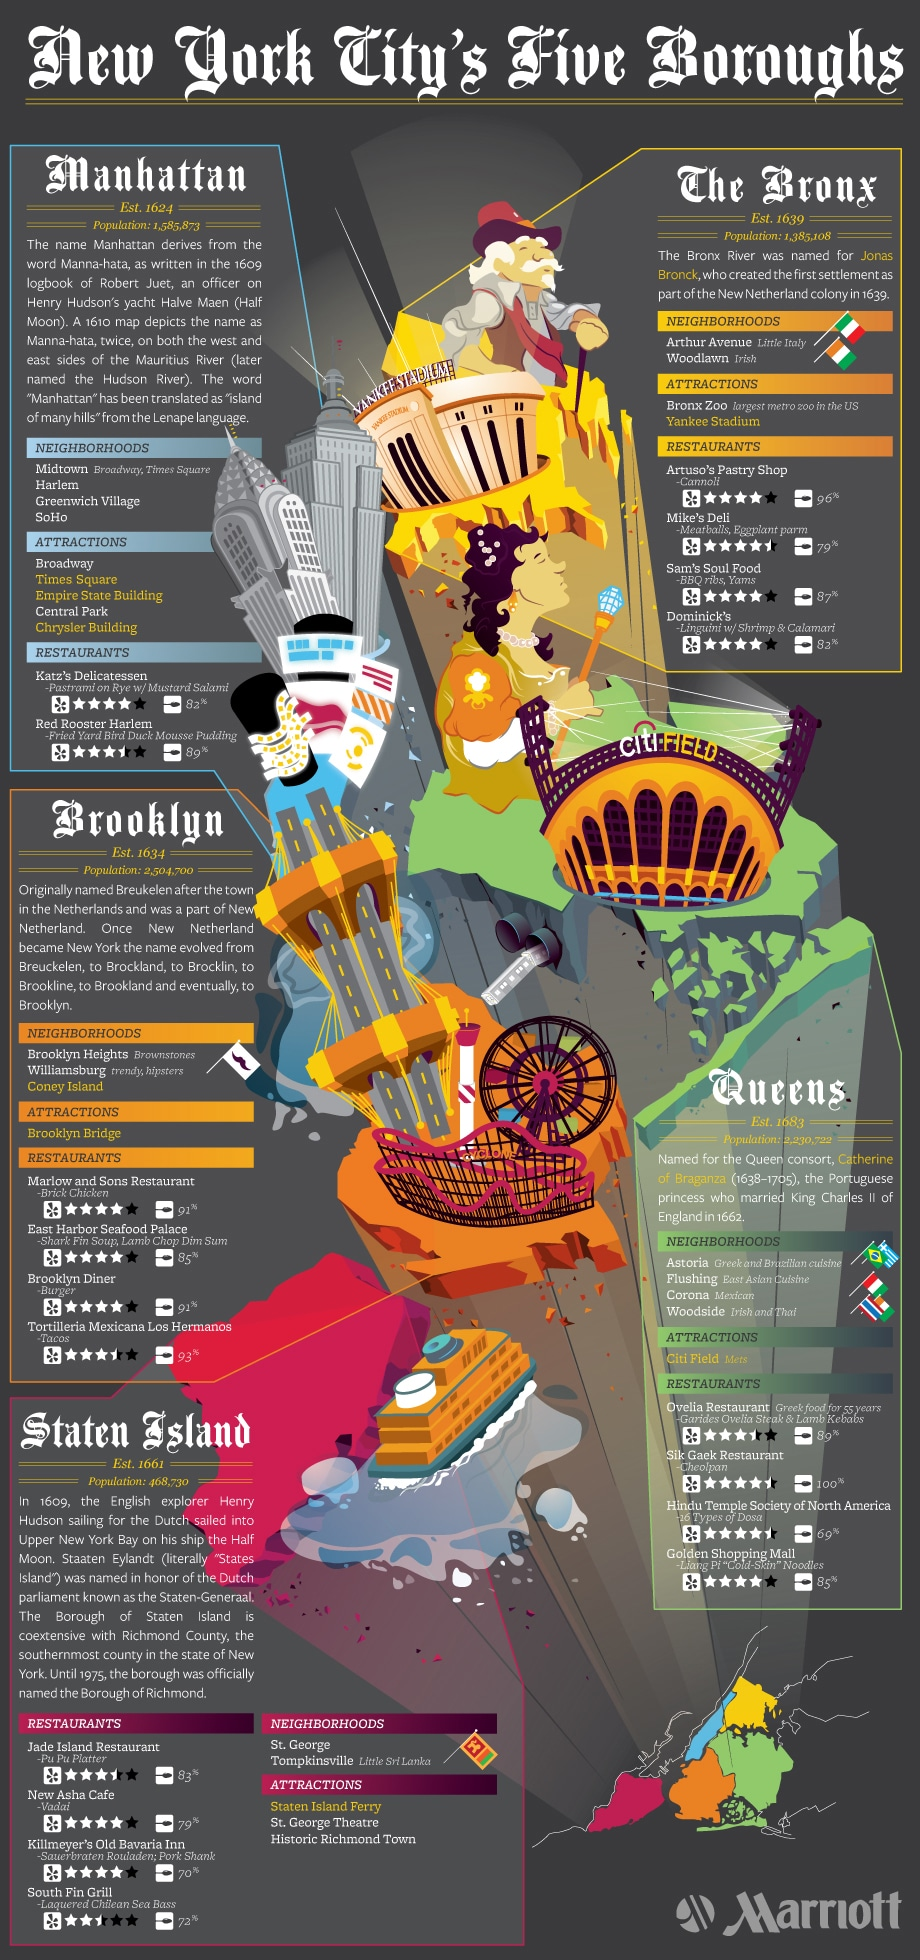 New York City Travel Guide Infographic